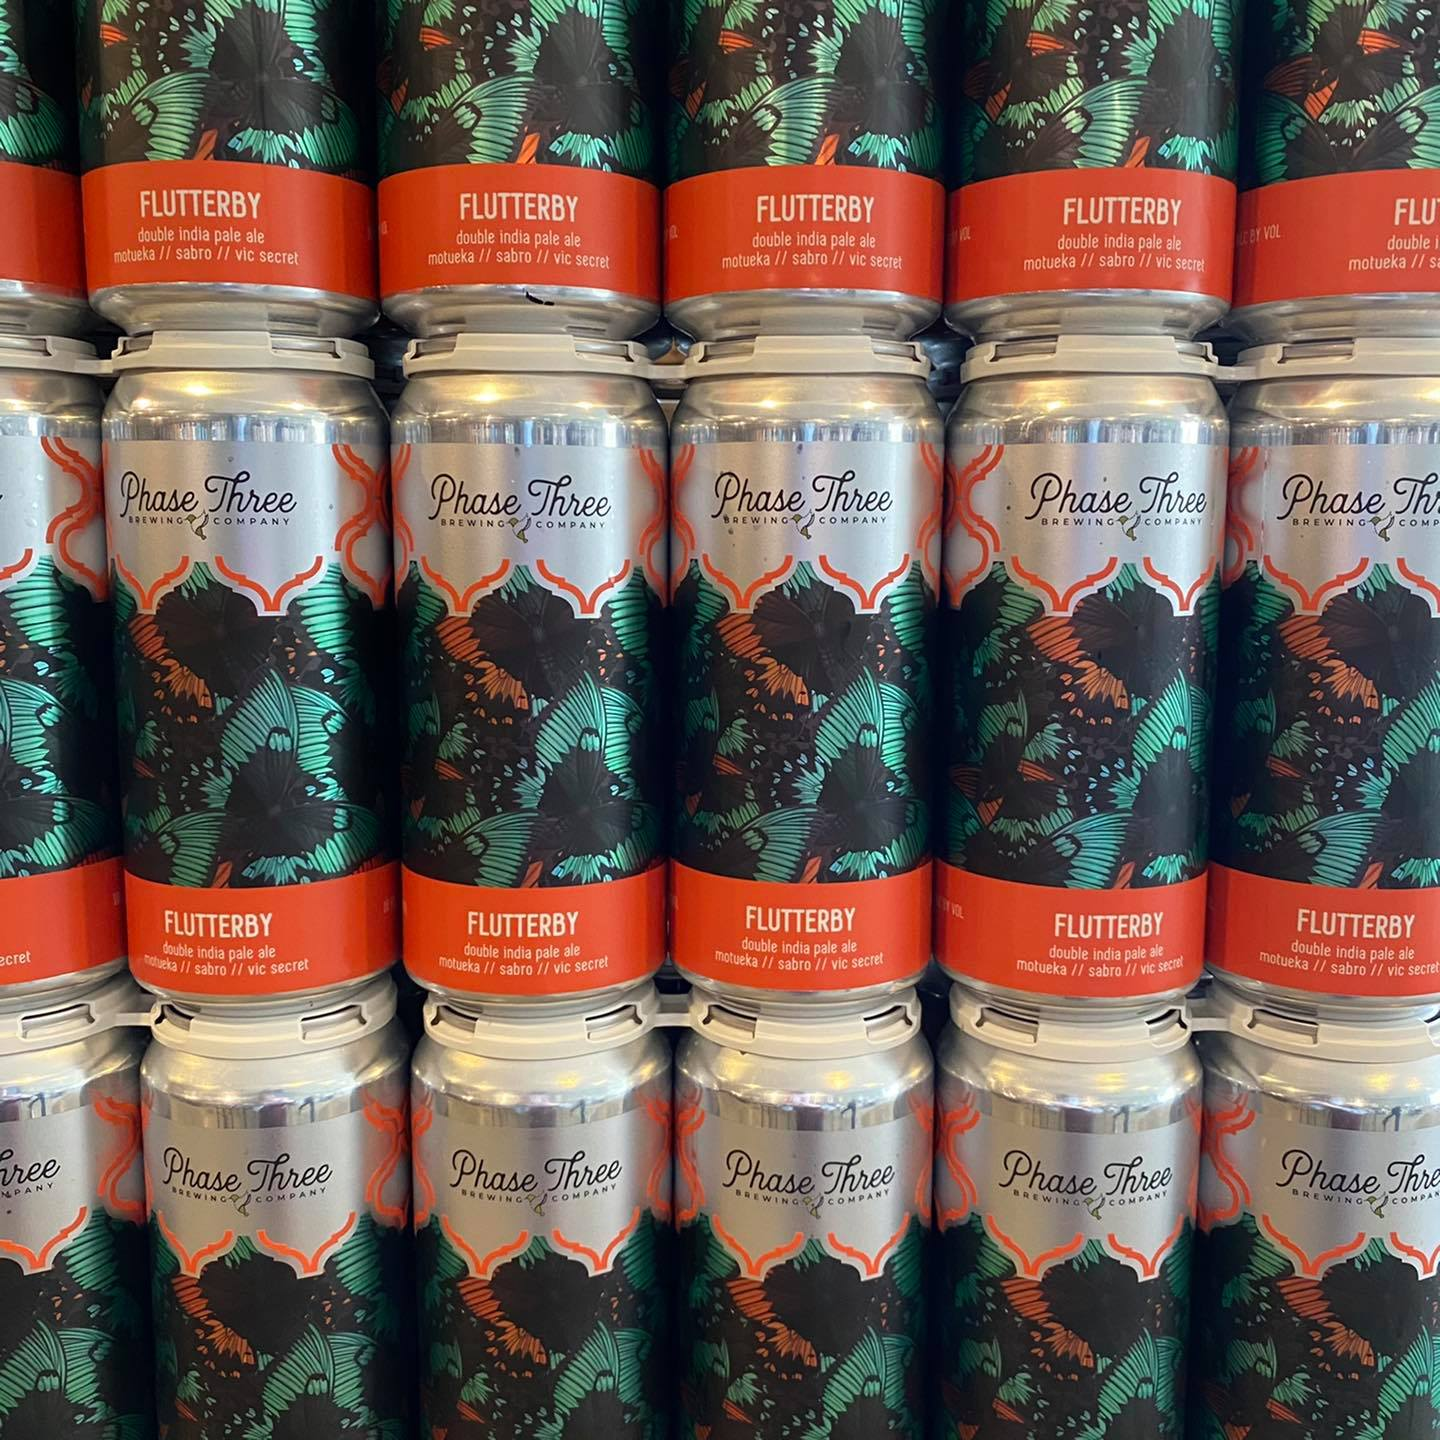 Stacks of cans from Phase Three Brewing